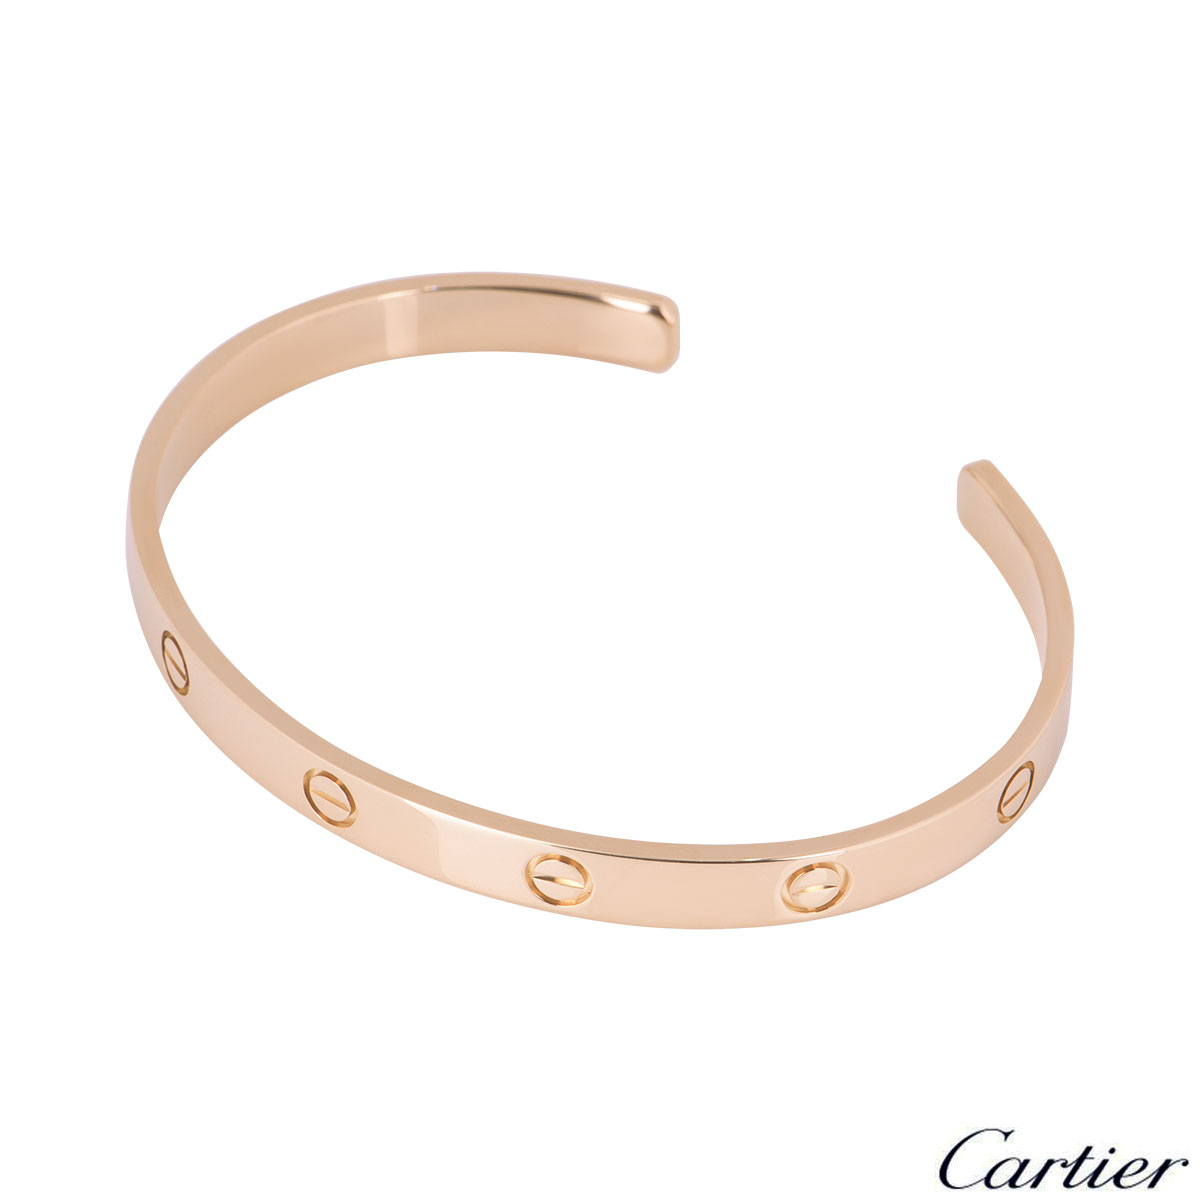 Cartier Rose Gold Plain Cuff Love Bracelet Size 20 B6032620